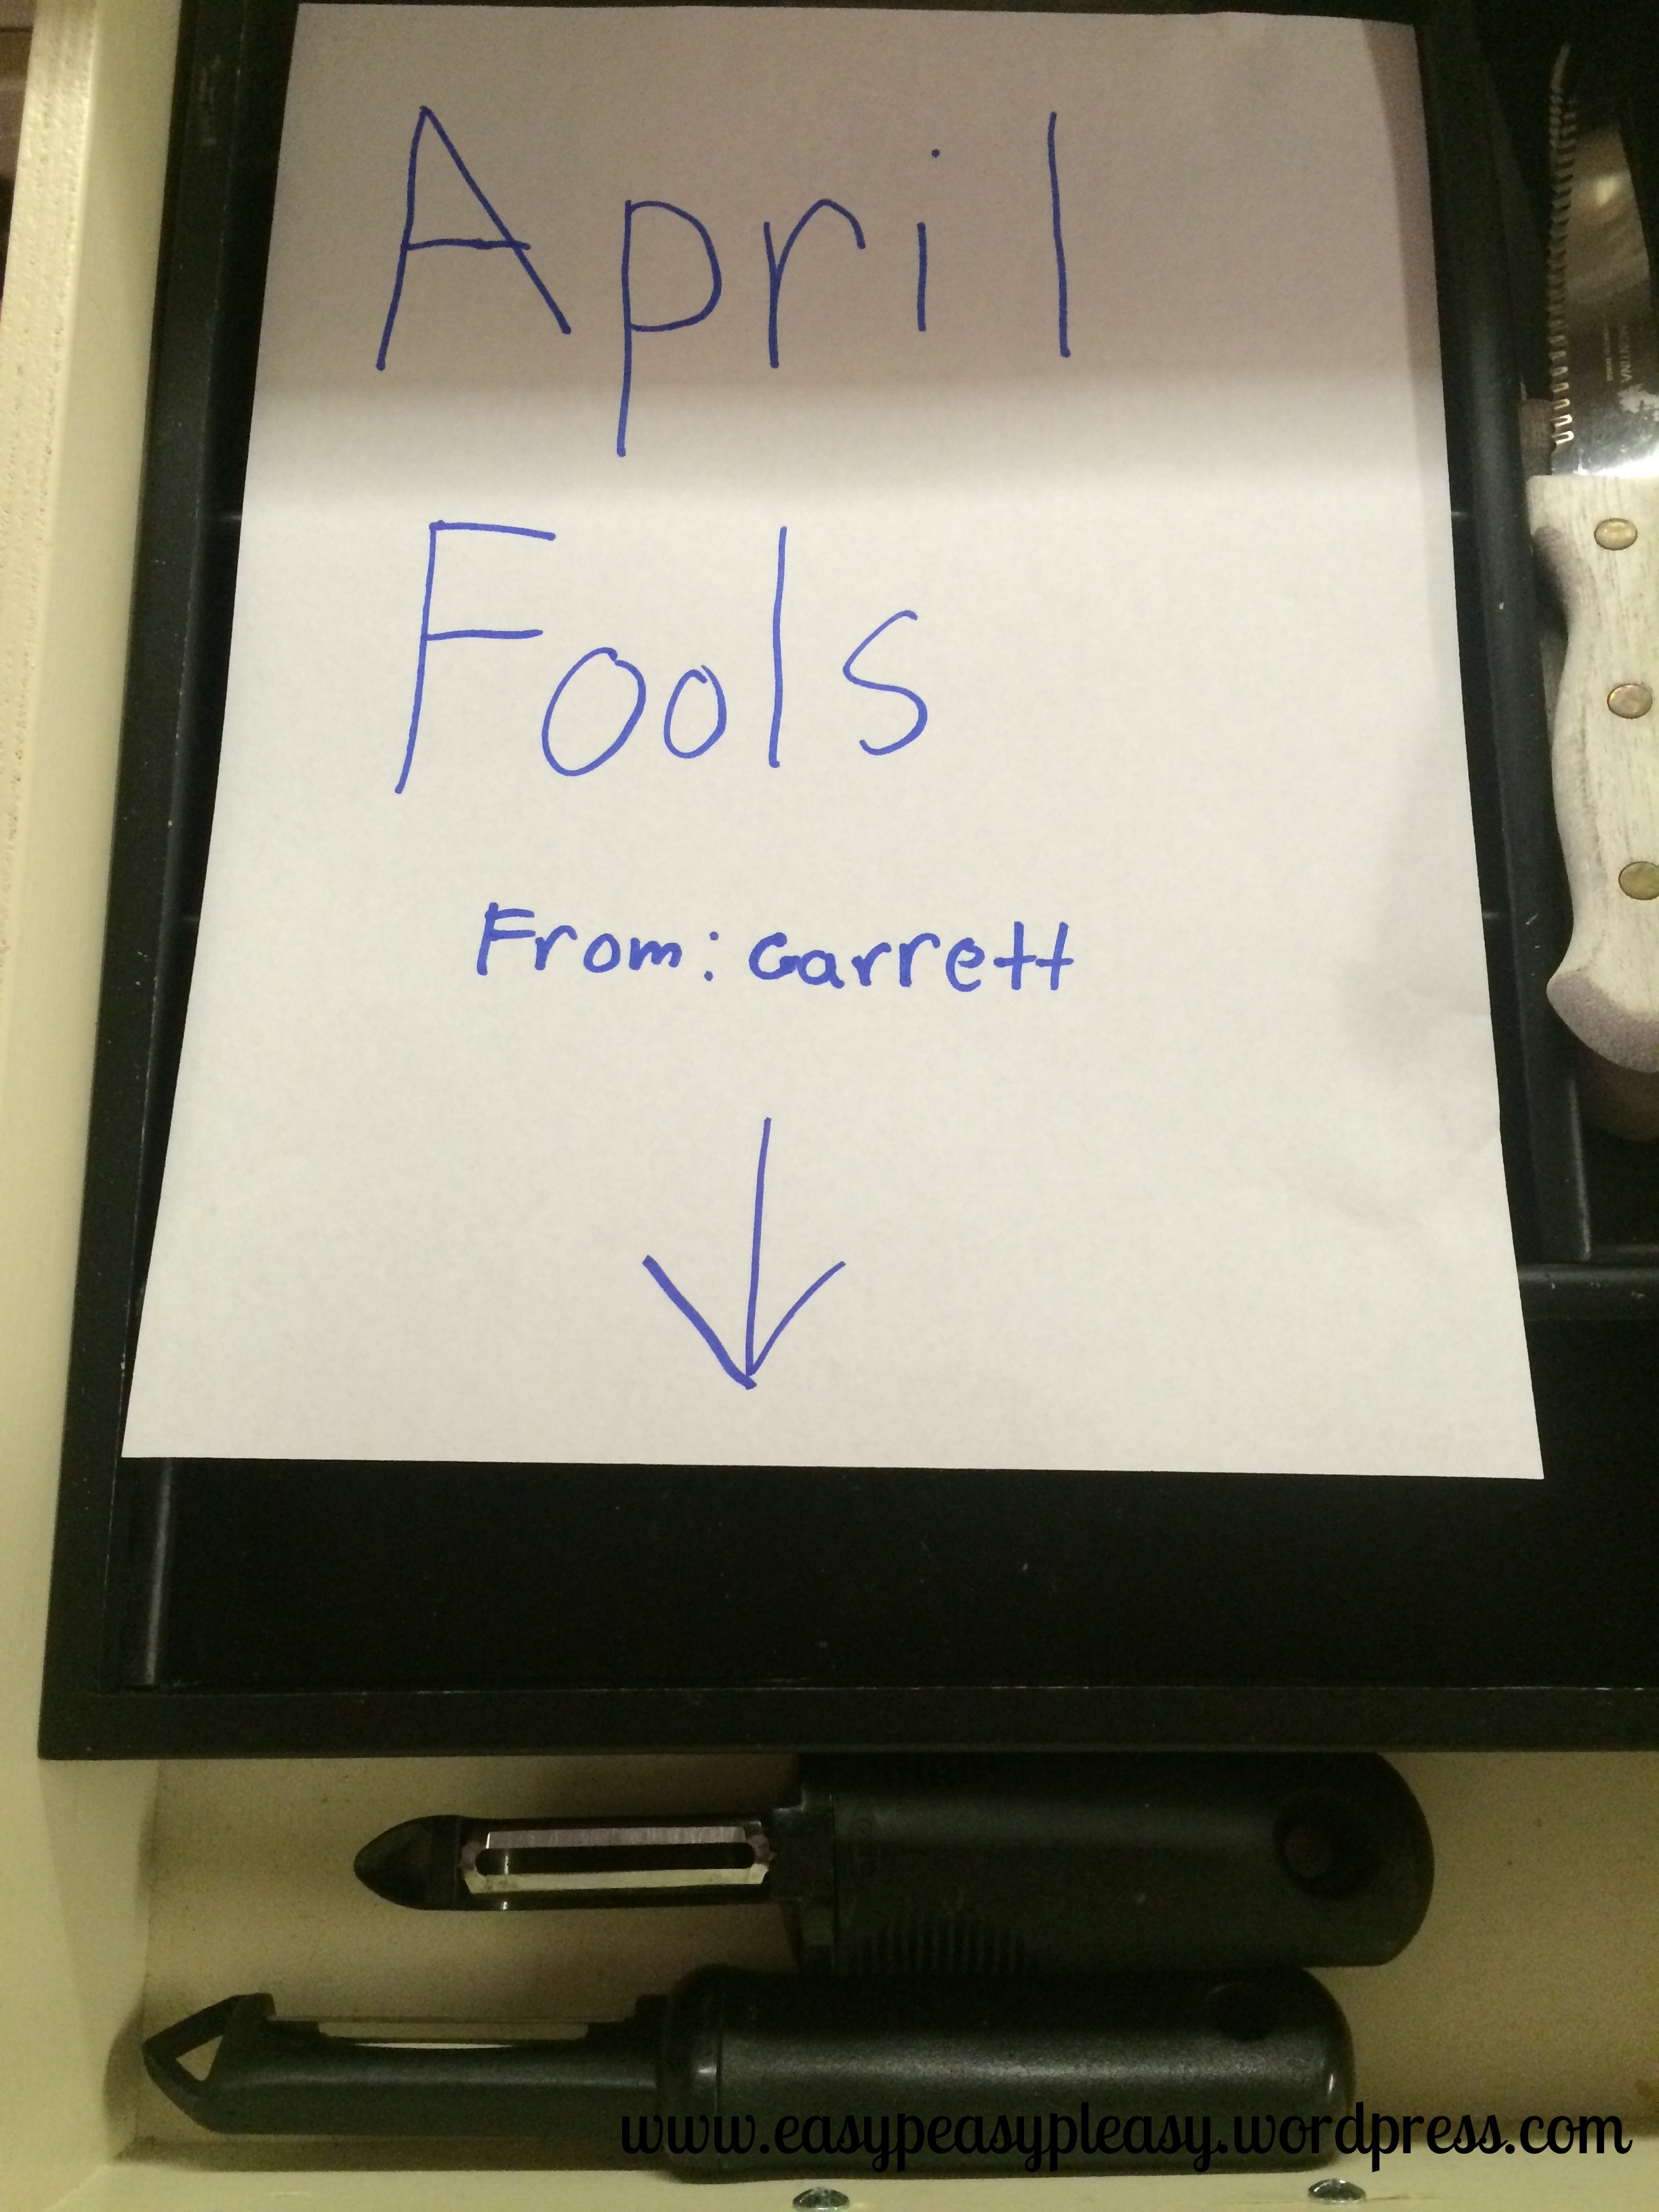 April Fools Day Prank War Silverware gone missing